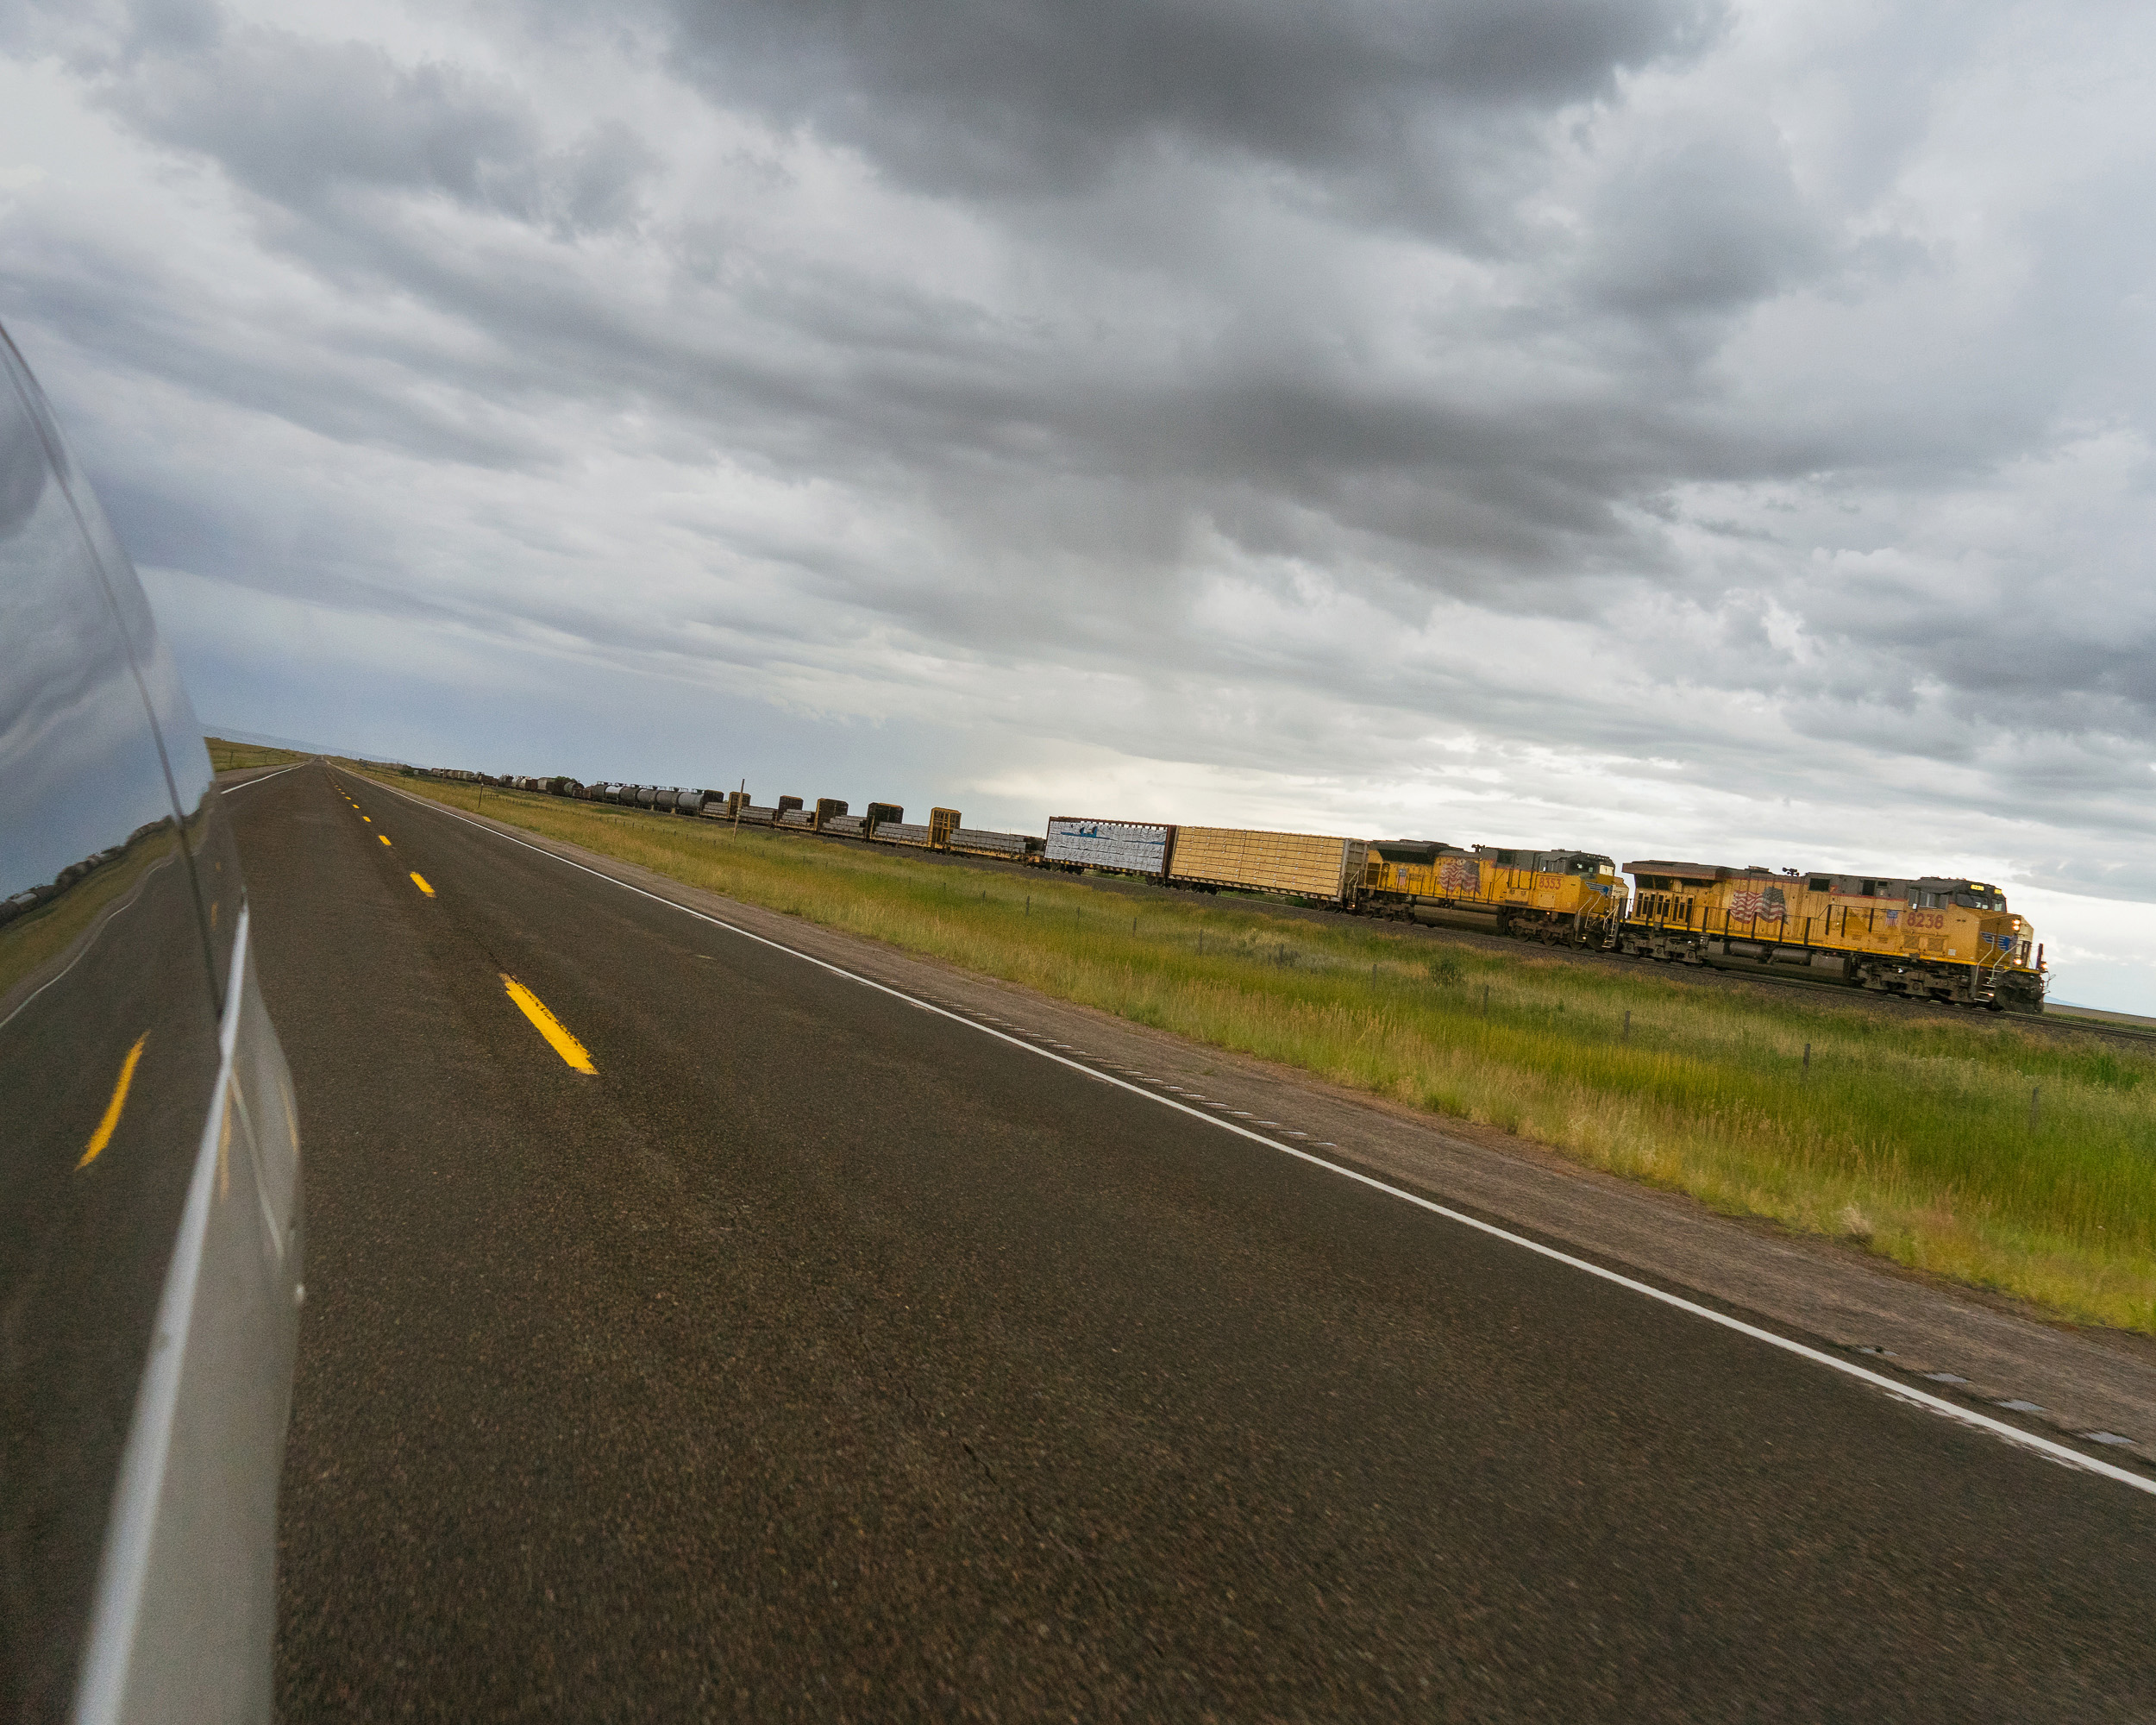 Chasing the Union Pacific Along US 30, Wyoming